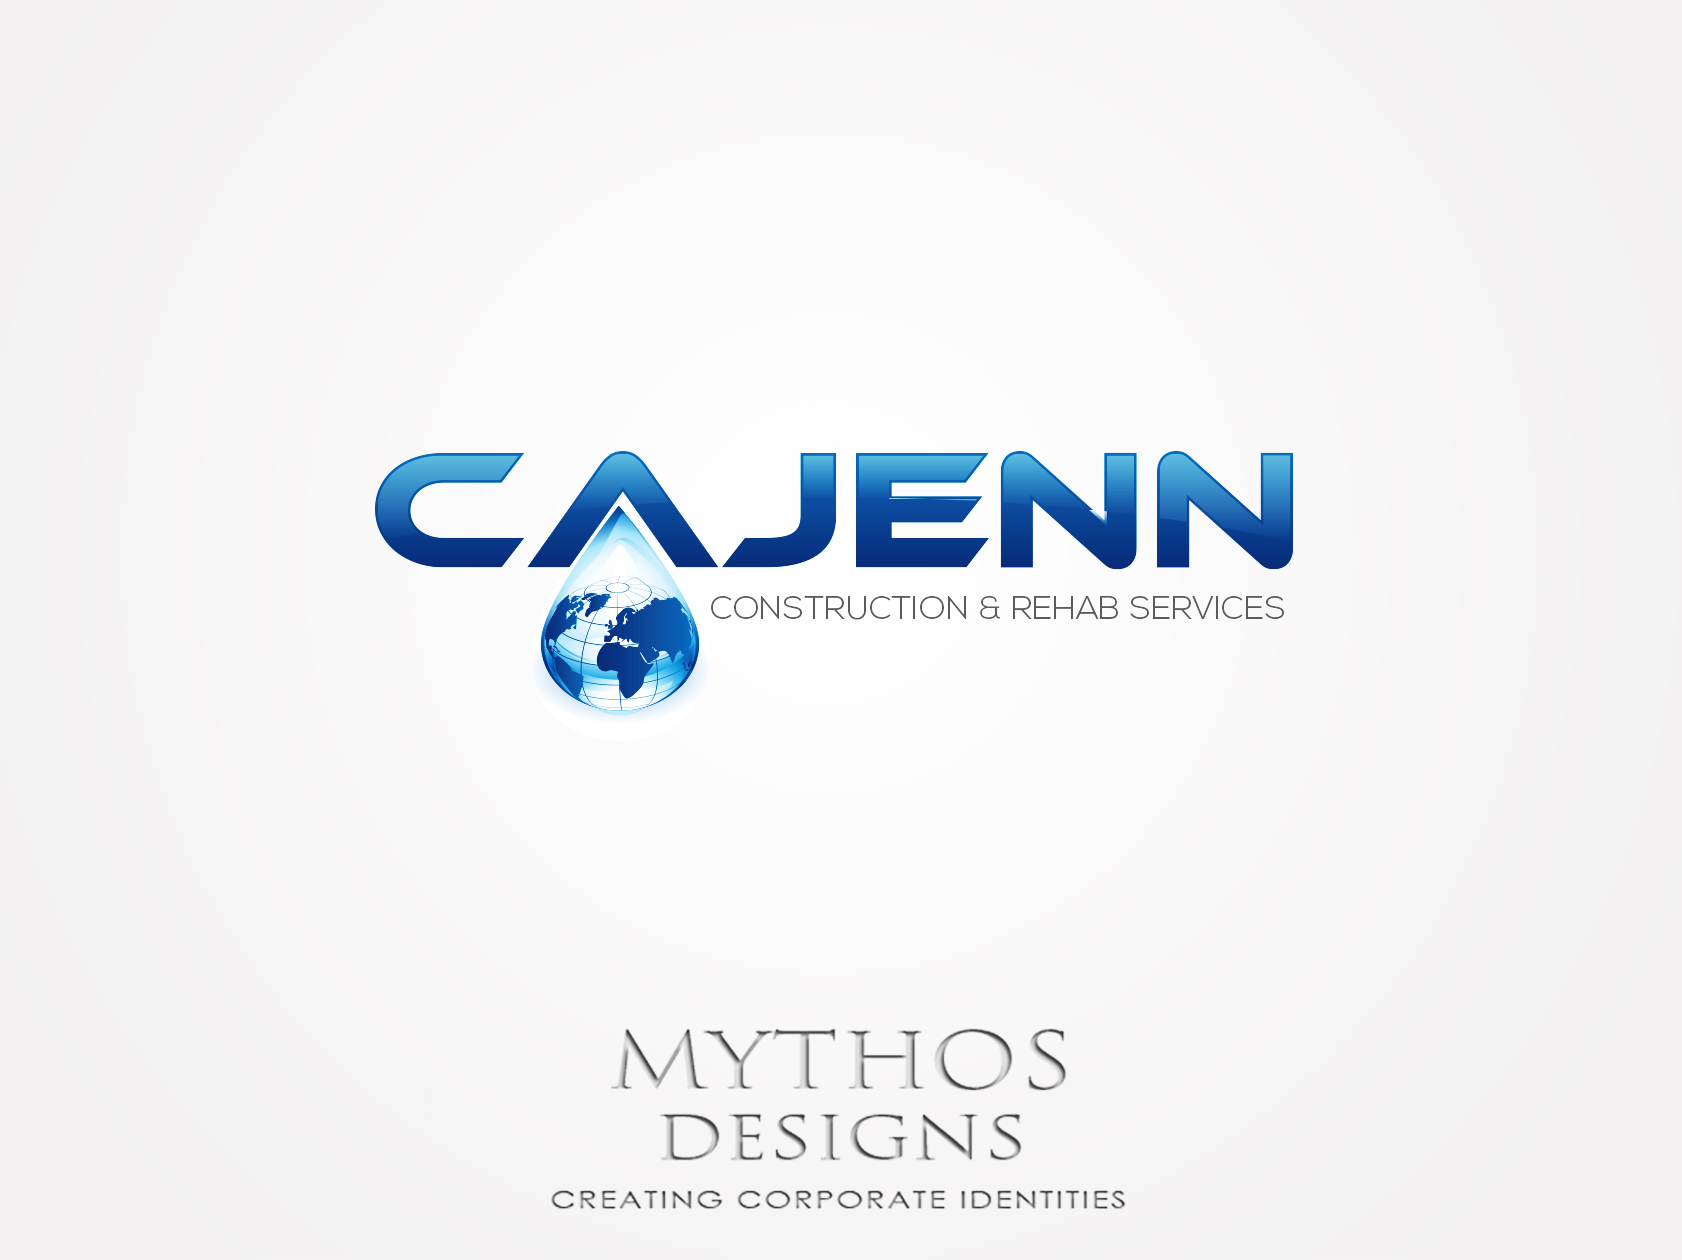 Logo Design by Mythos Designs - Entry No. 311 in the Logo Design Contest New Logo Design for CaJenn Construction & Rehab Services.